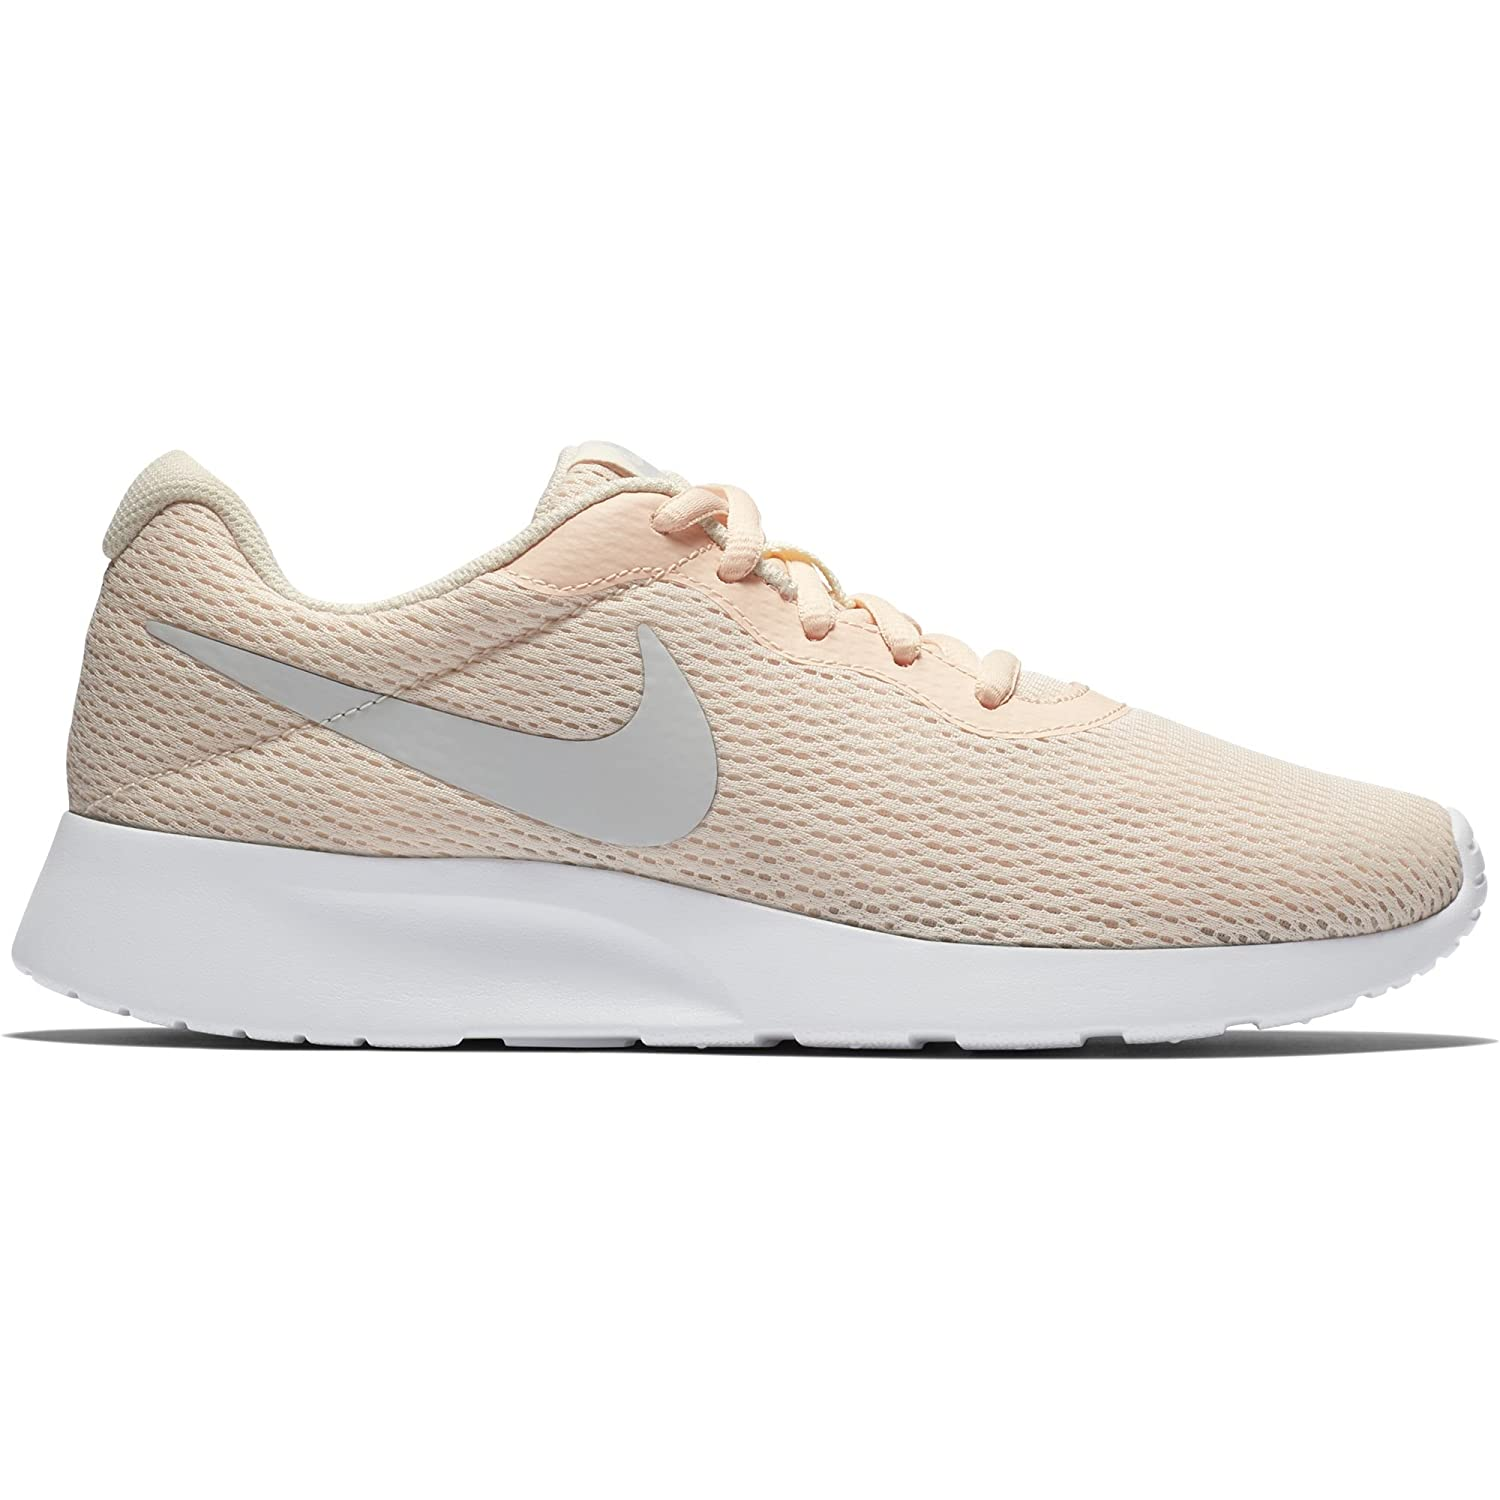 NIKE Women's Tanjun Running Shoes B07CY6SD2Y 8 B(M) US|Guava Ice/Vast Grey/White